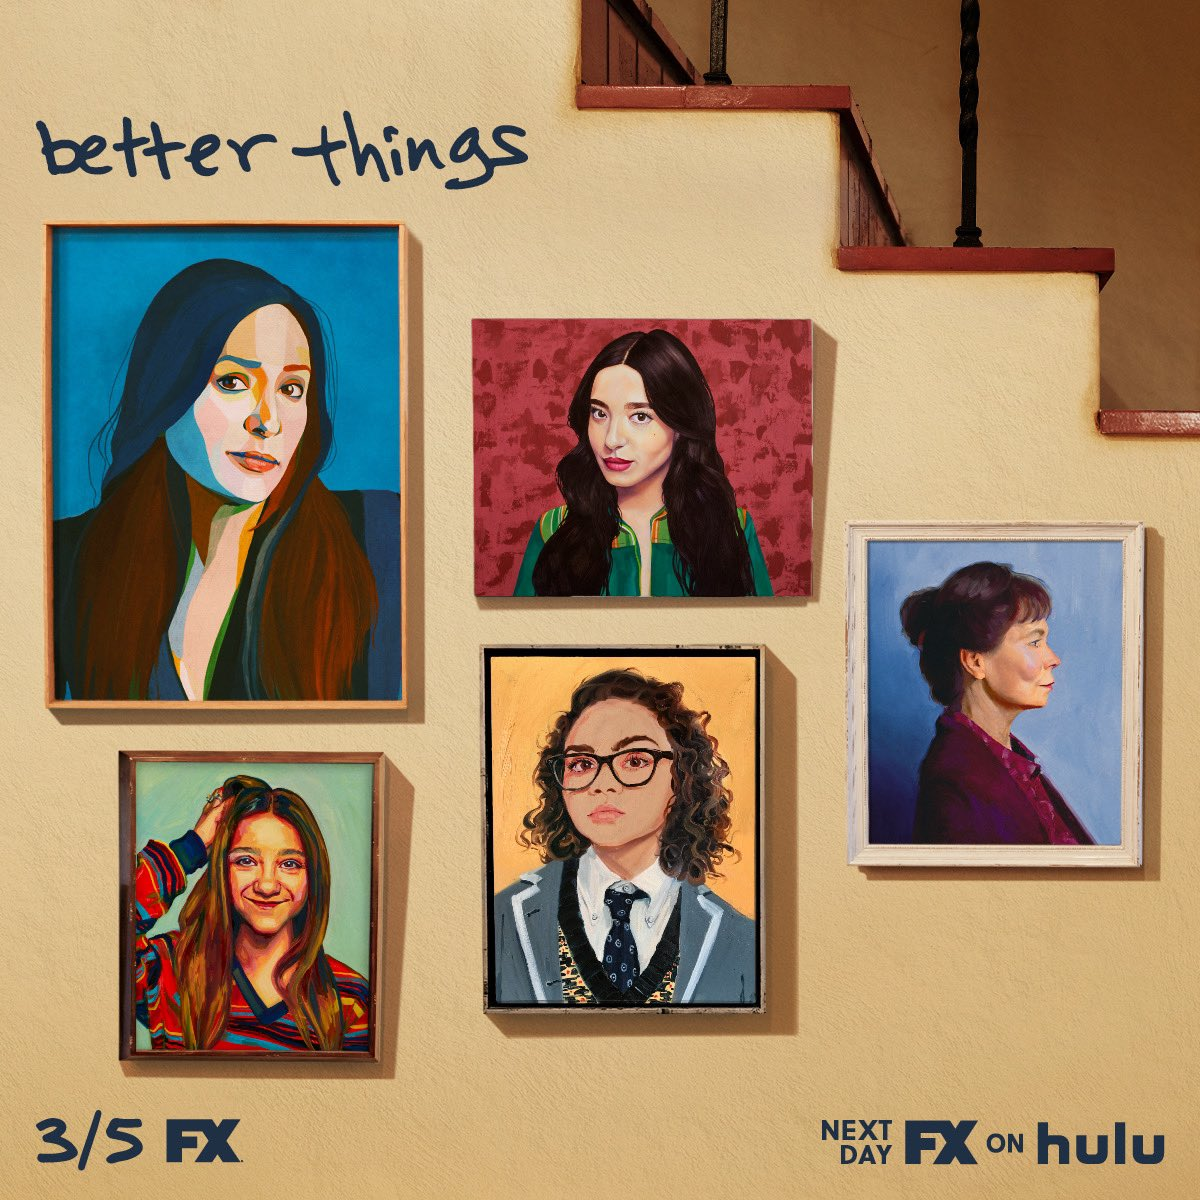 Oh my god oh my dear gay god. T-1 MONTH: SEASON 4 of BETTER THINGS!! Thursday March 5th, @BetterthingsFX airs on @FXNetworks & the next day on @Hulu. Hungry? Watch the first 3 seasons on Hulu right fucking now. Also…This is the key art. We got painted by some sick artists.